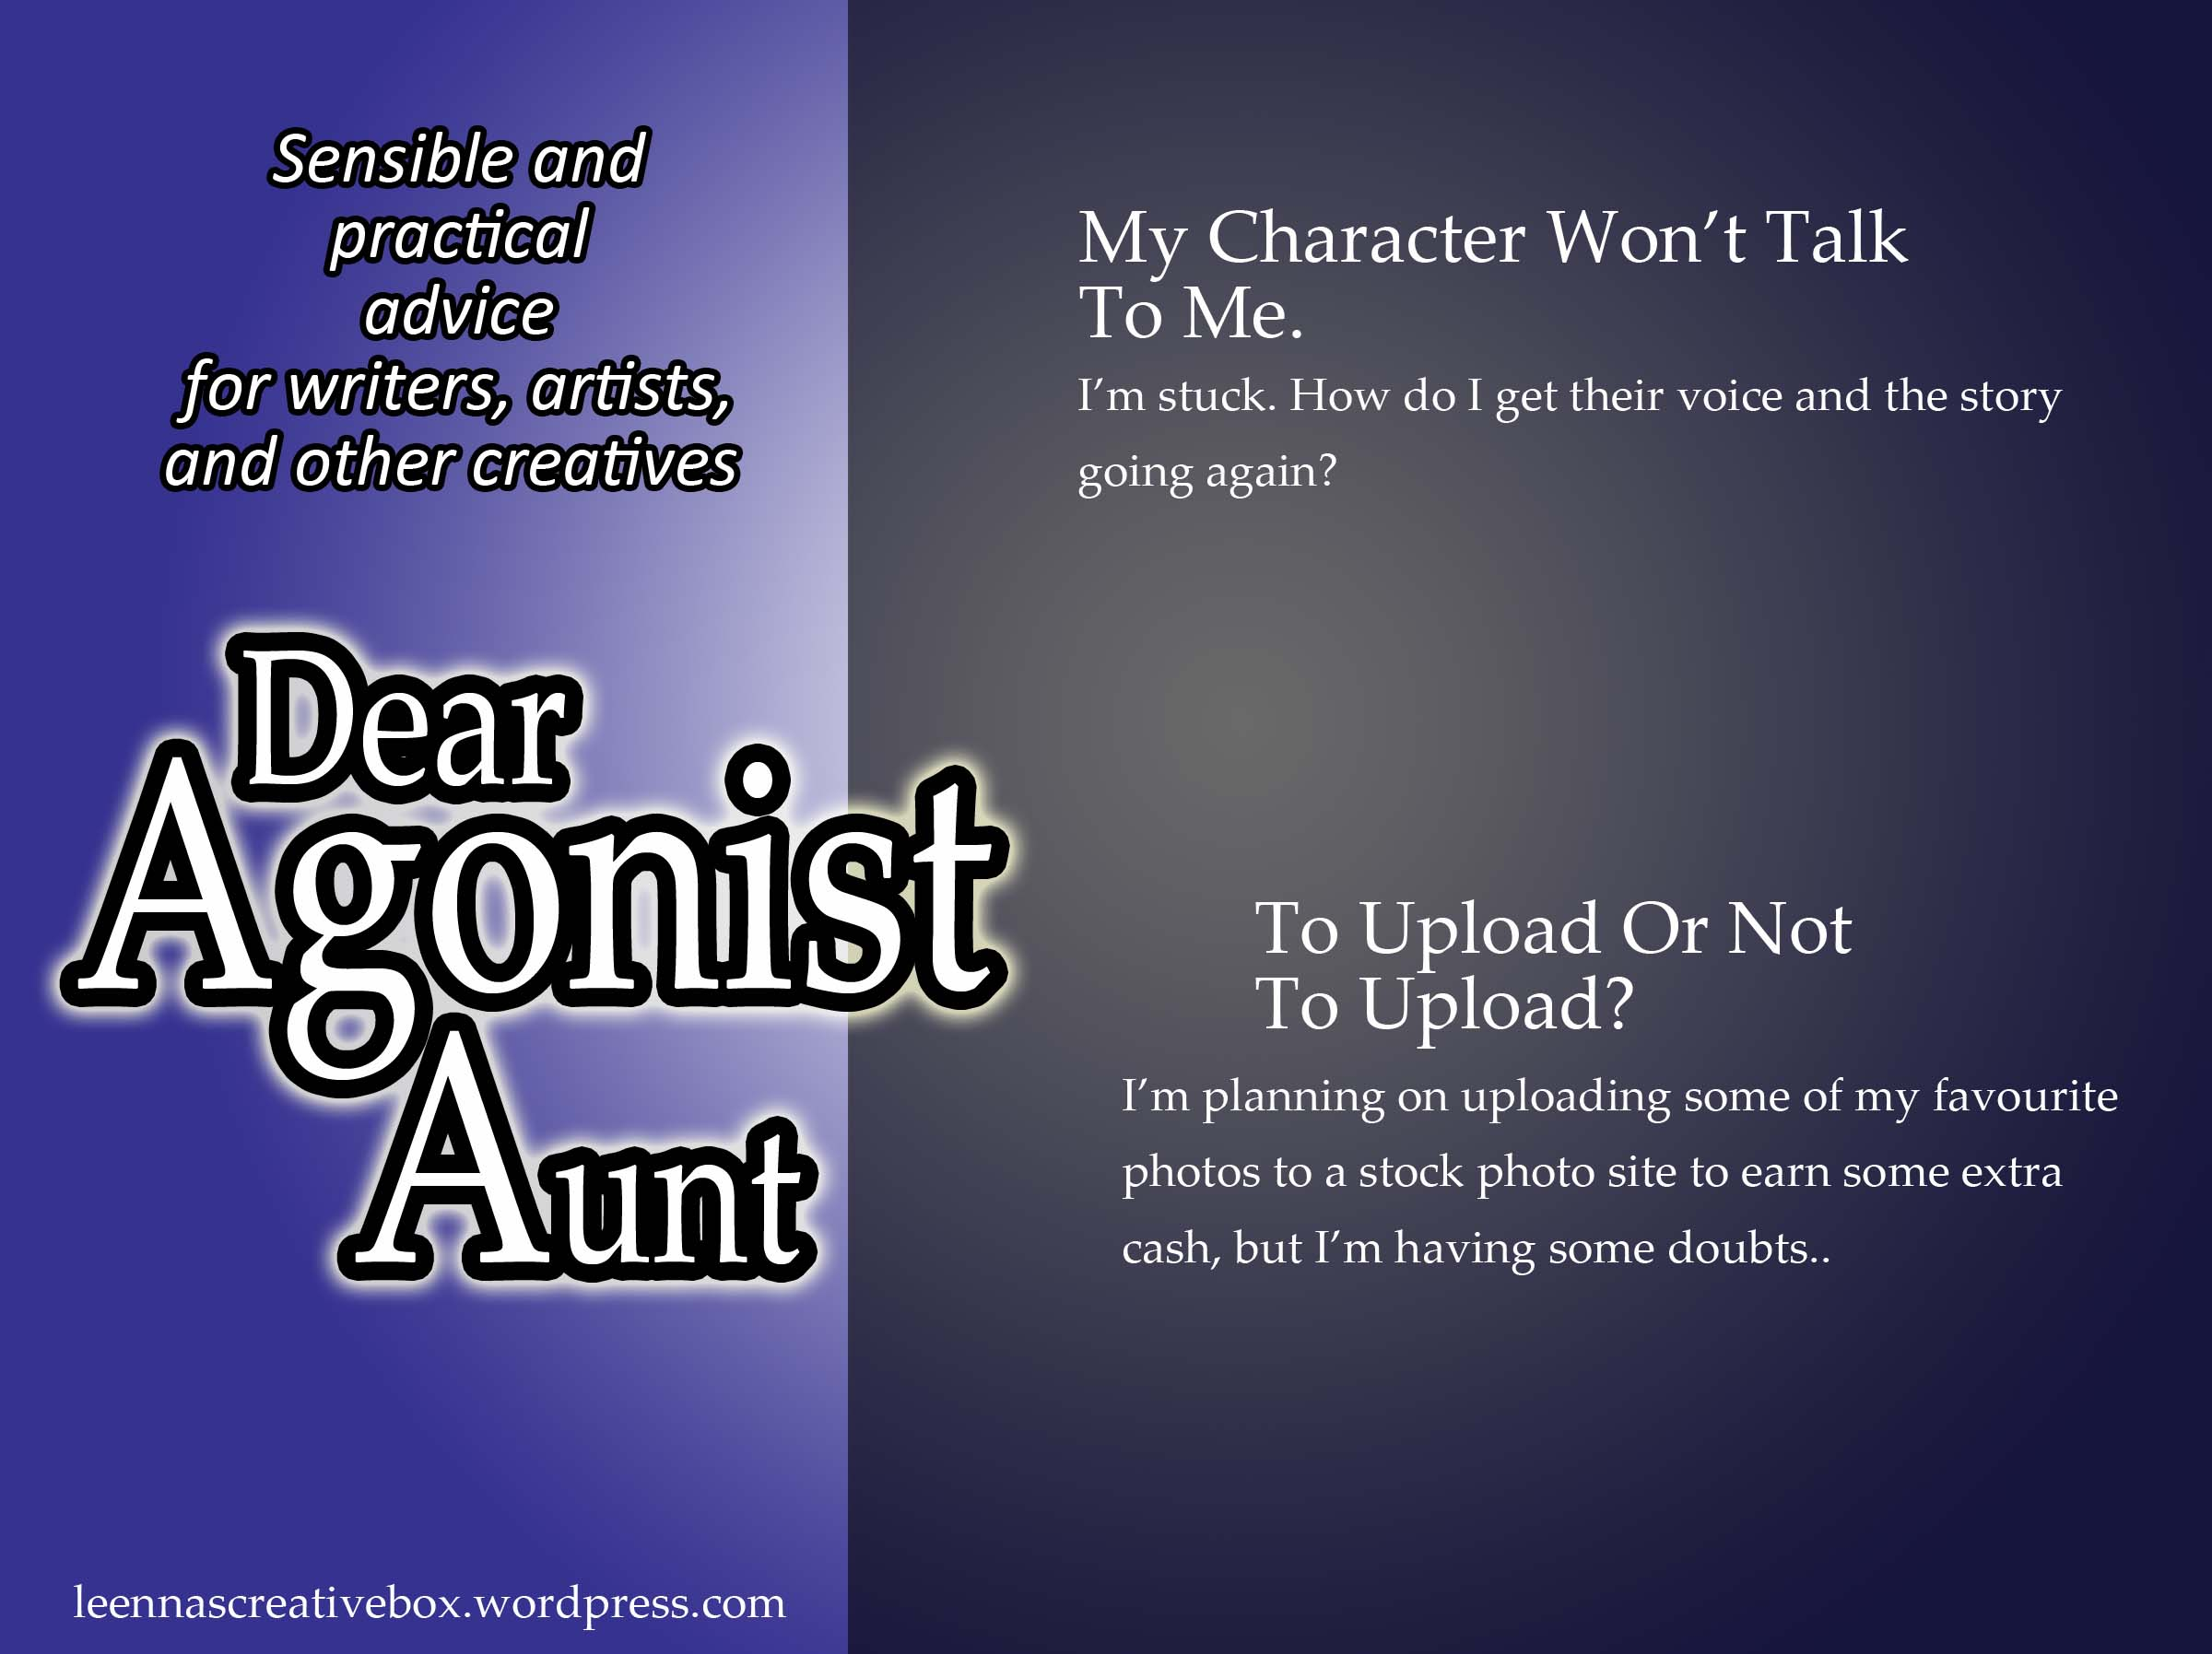 Dear Agonist Aunt: Sulking Character, Photo Op or Not?